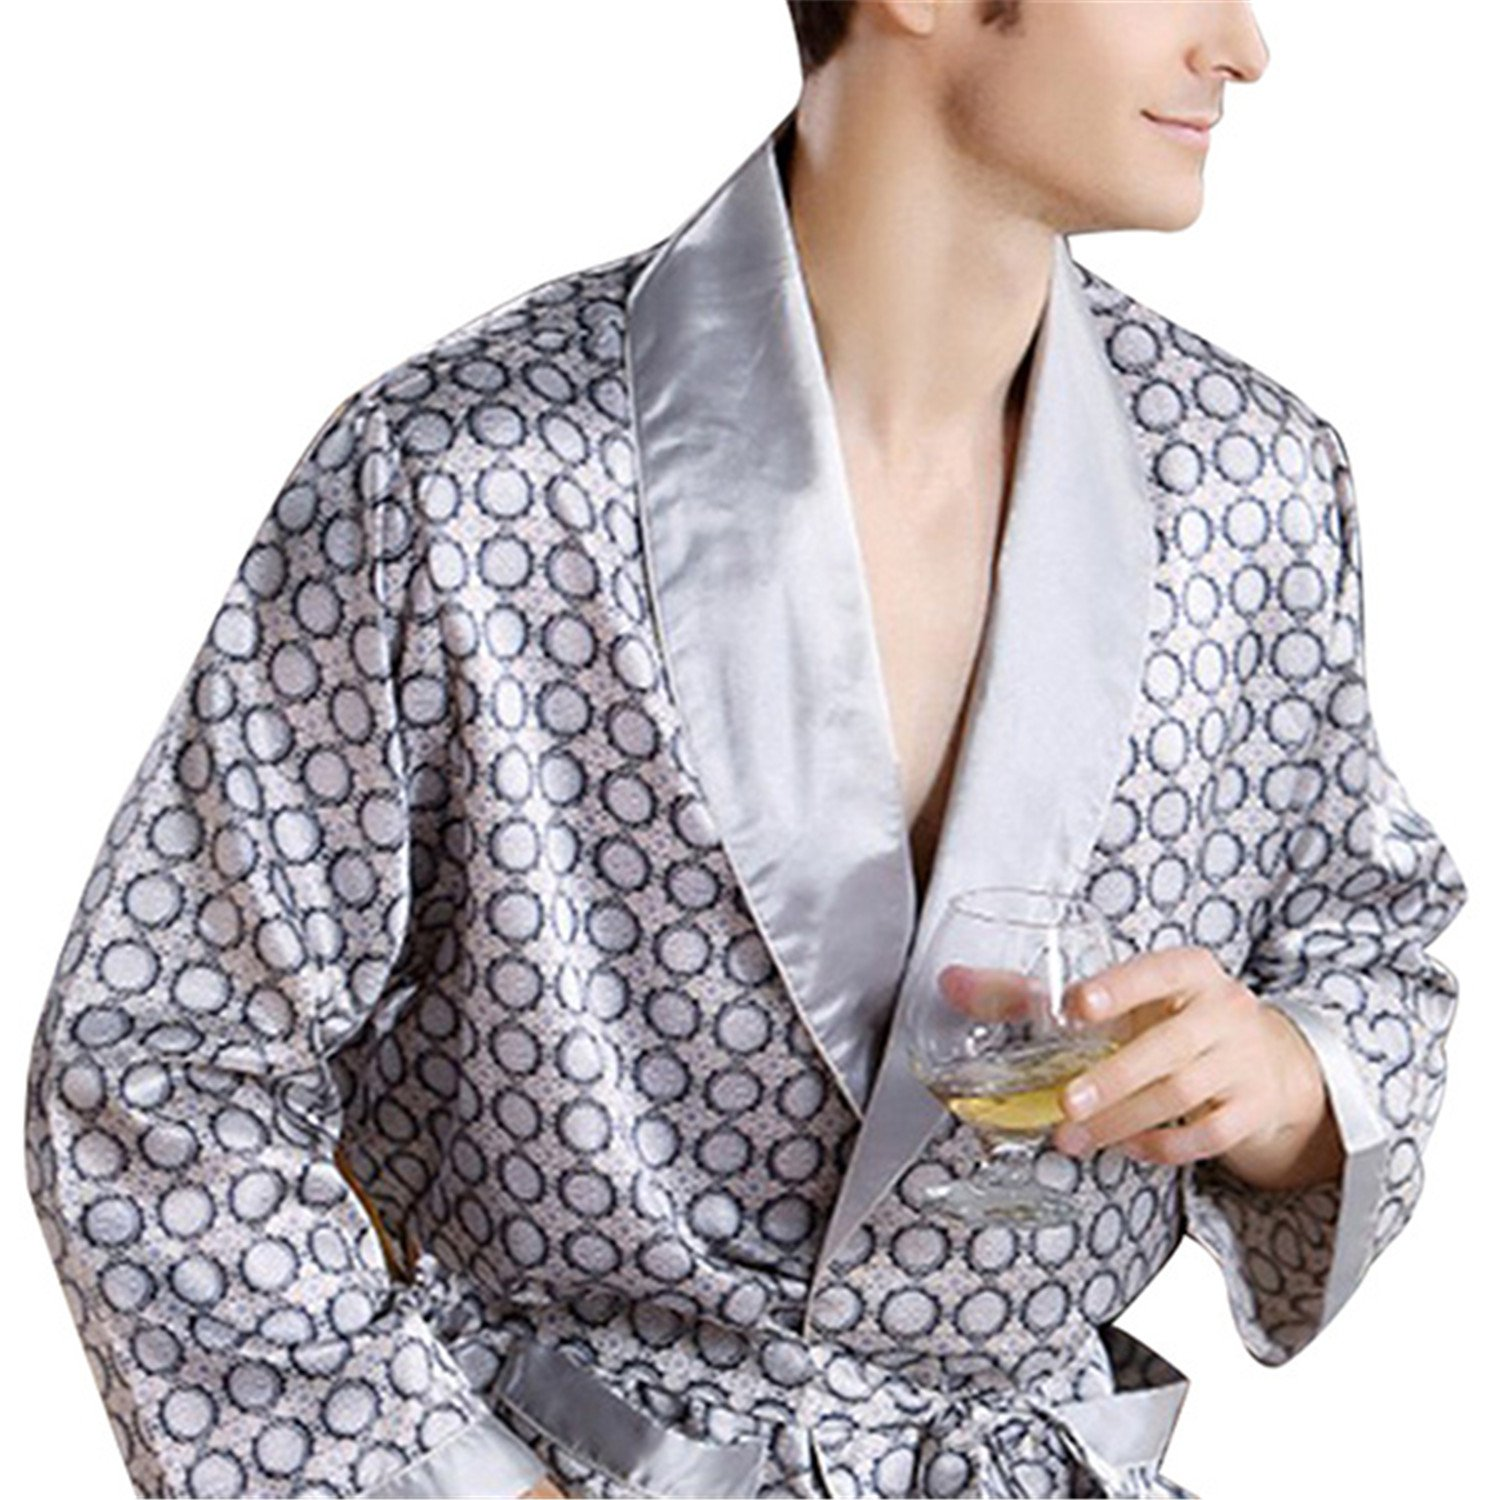 Orcan Bluce Pyjamas Mens Luxury Bathrobe Geometric Robes V-neck Imitation Silk Knitted Sleepwear Full Sleeve Nightwear 01 L by Orcan Bluce